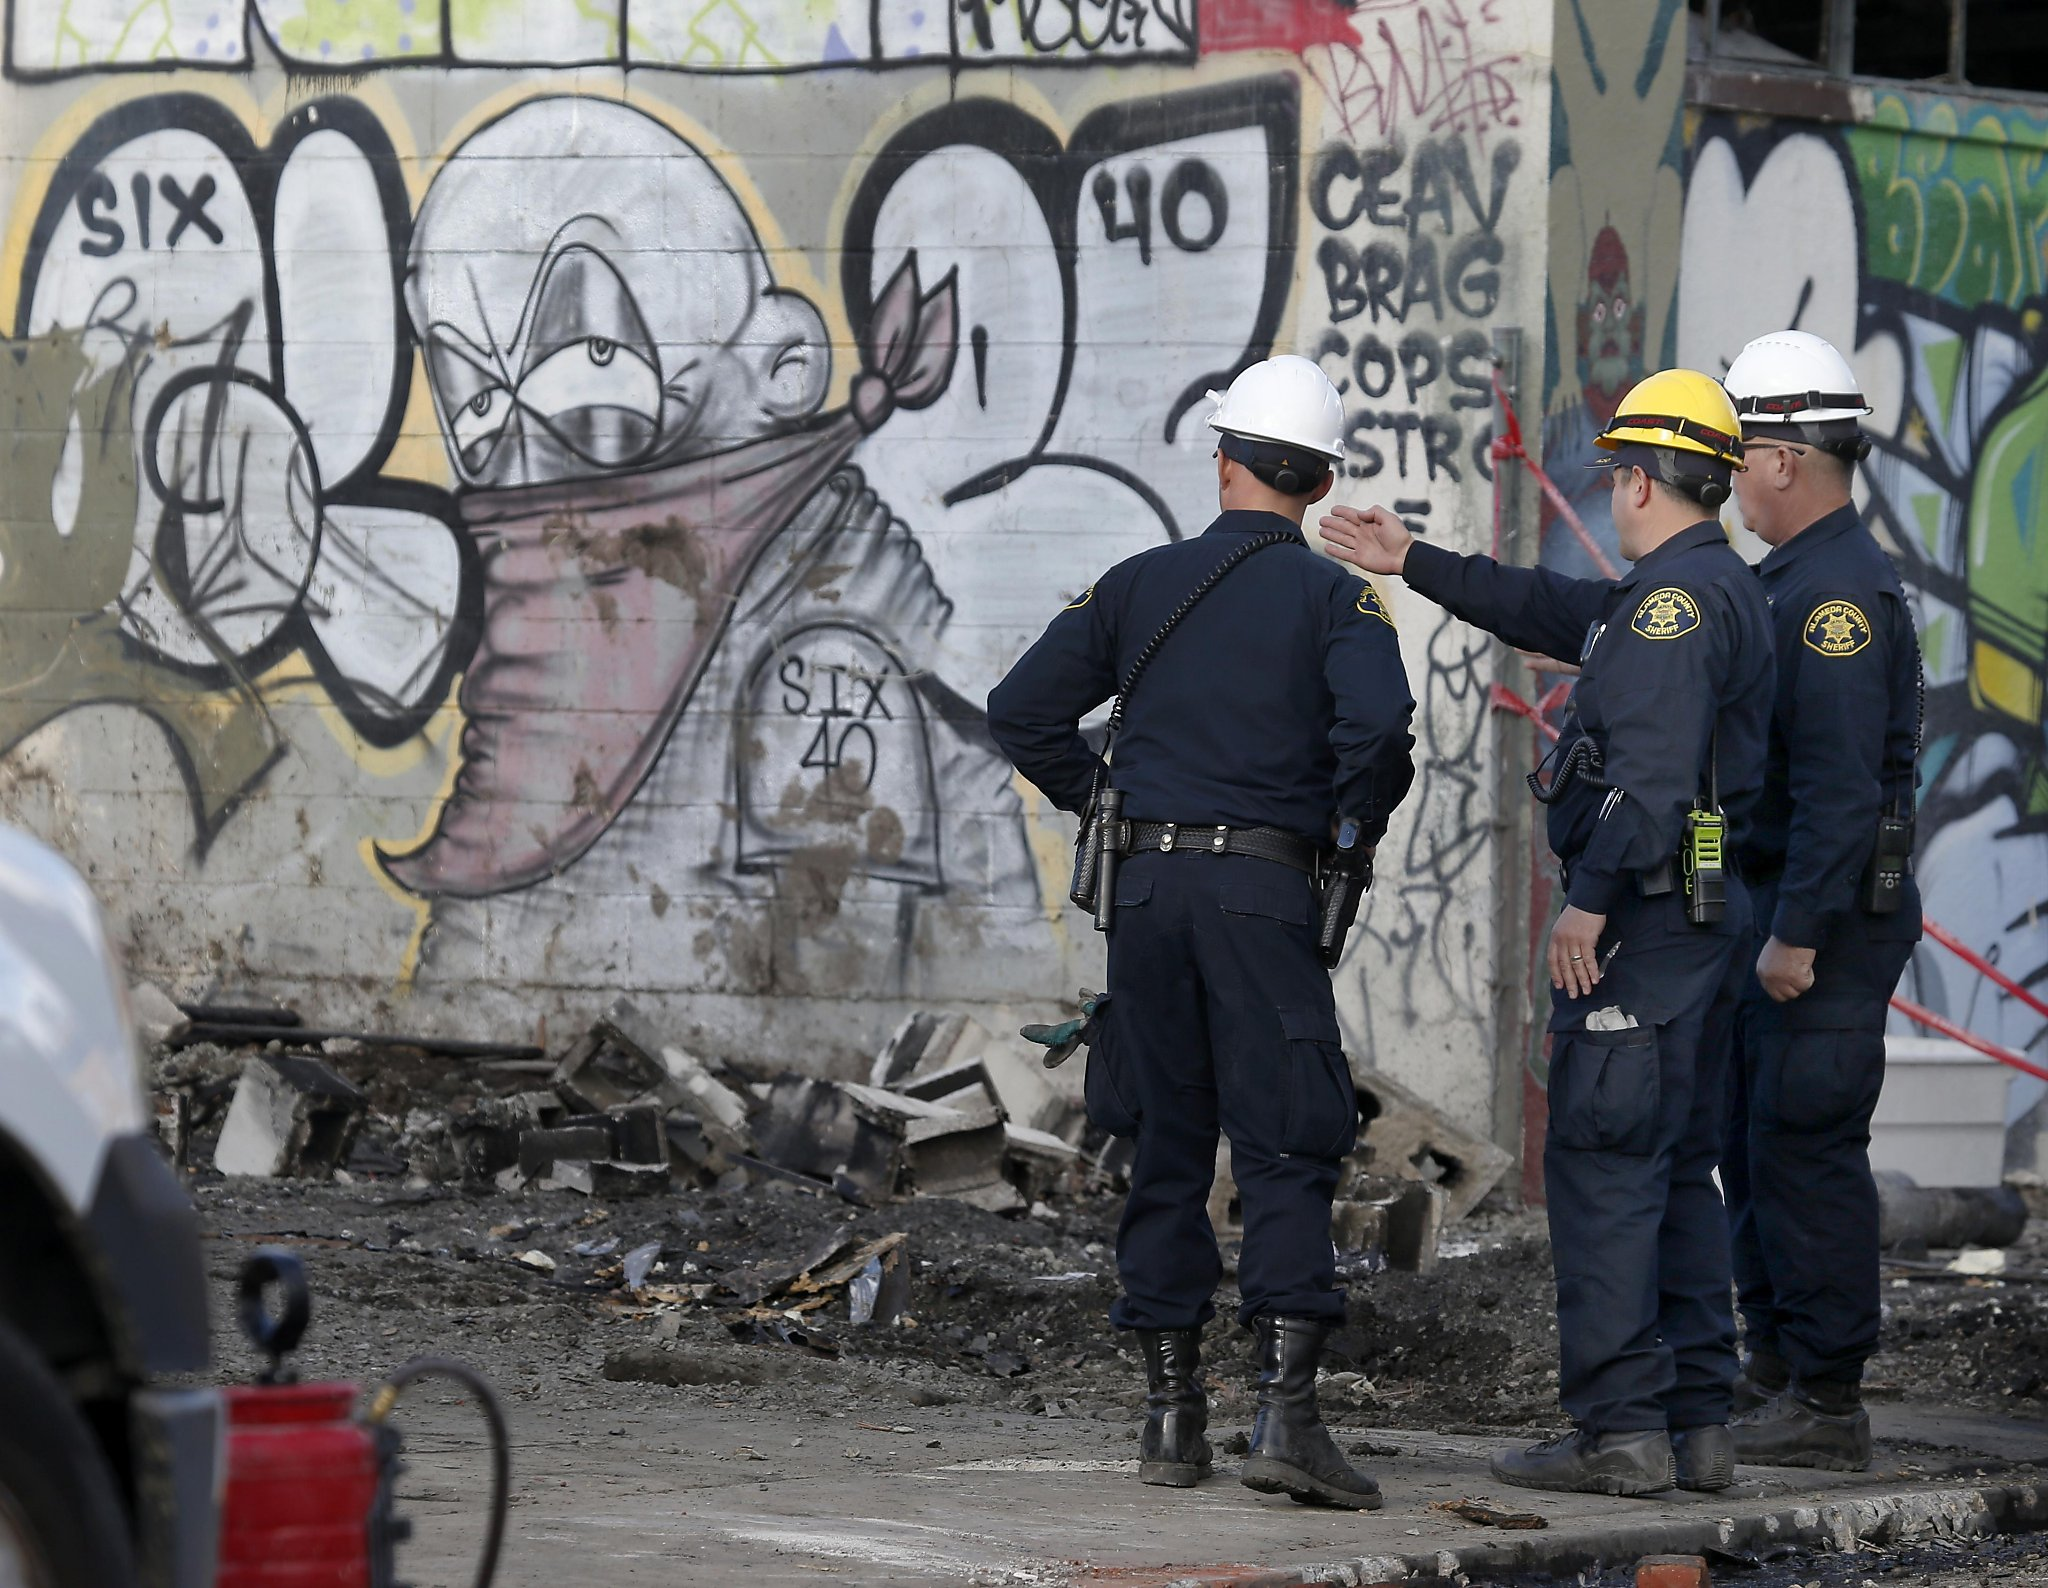 rawImage oakland fire was definitively not caused by fridge, atf says sfgate 1929 Oakland Brougham at mifinder.co